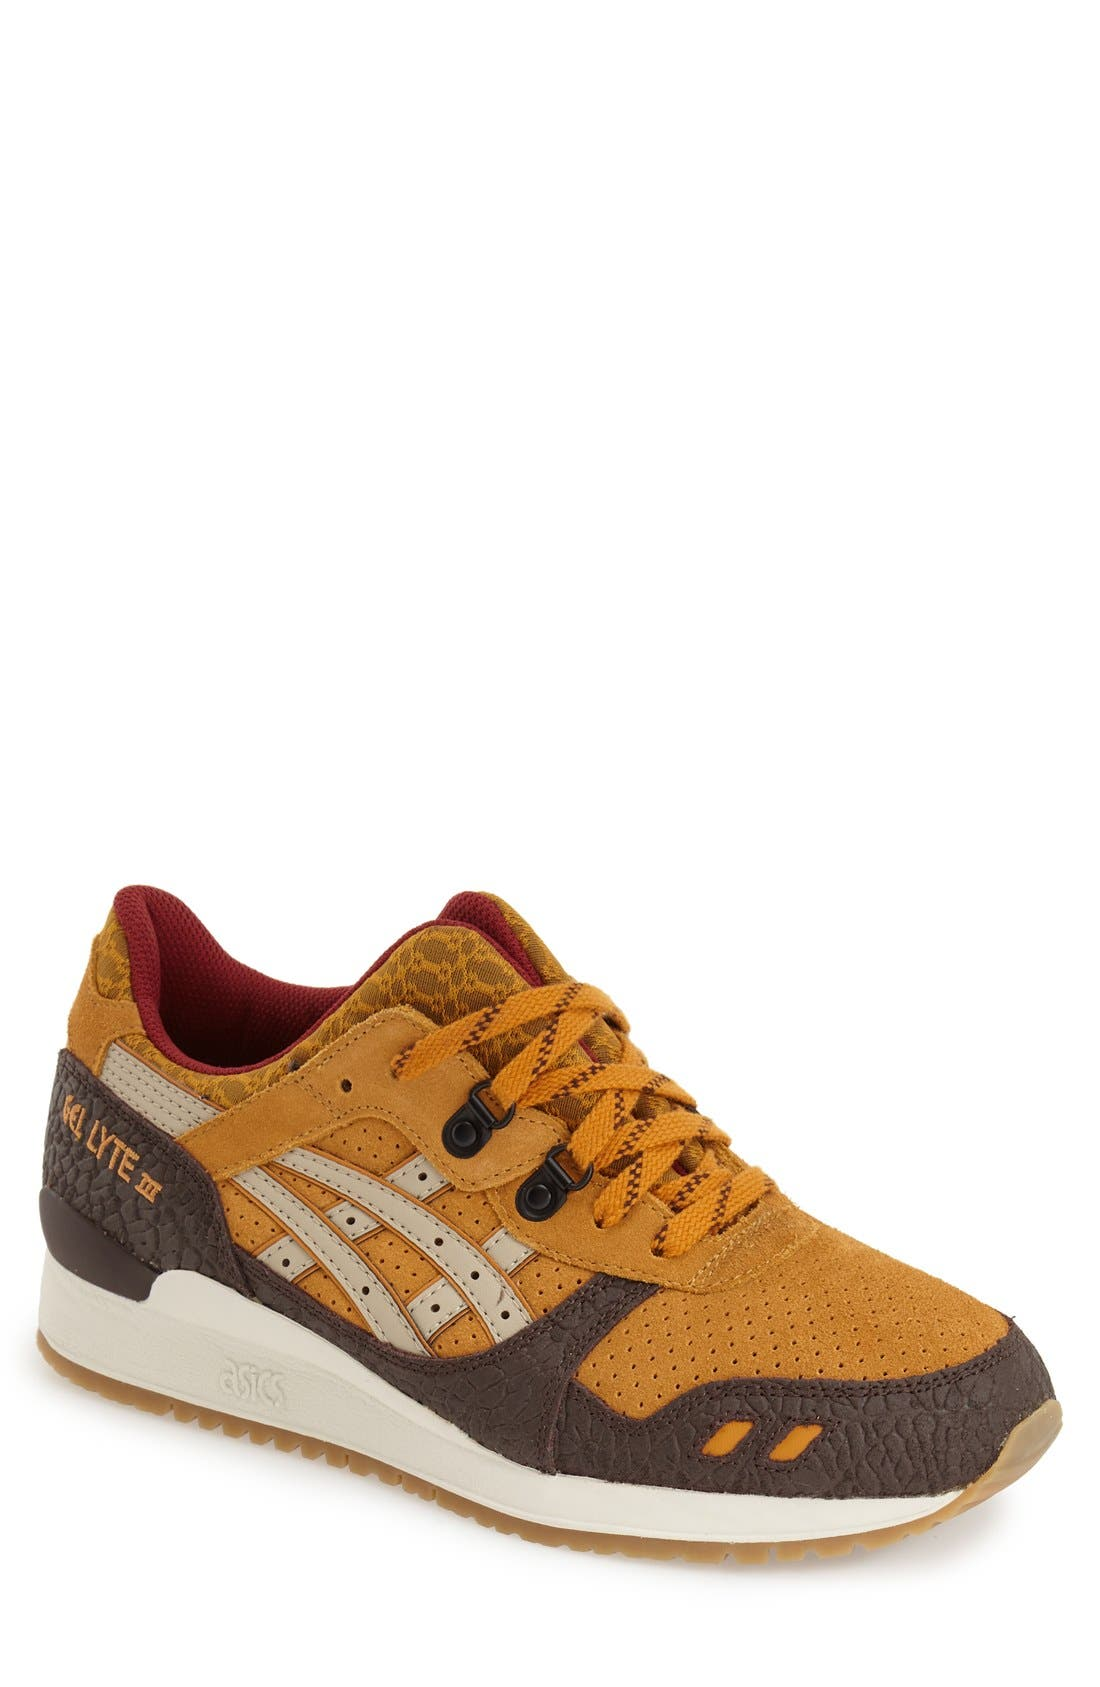 Alternate Image 1 Selected - ASICS® 'GEL-Lyte III' Sneaker (Men)